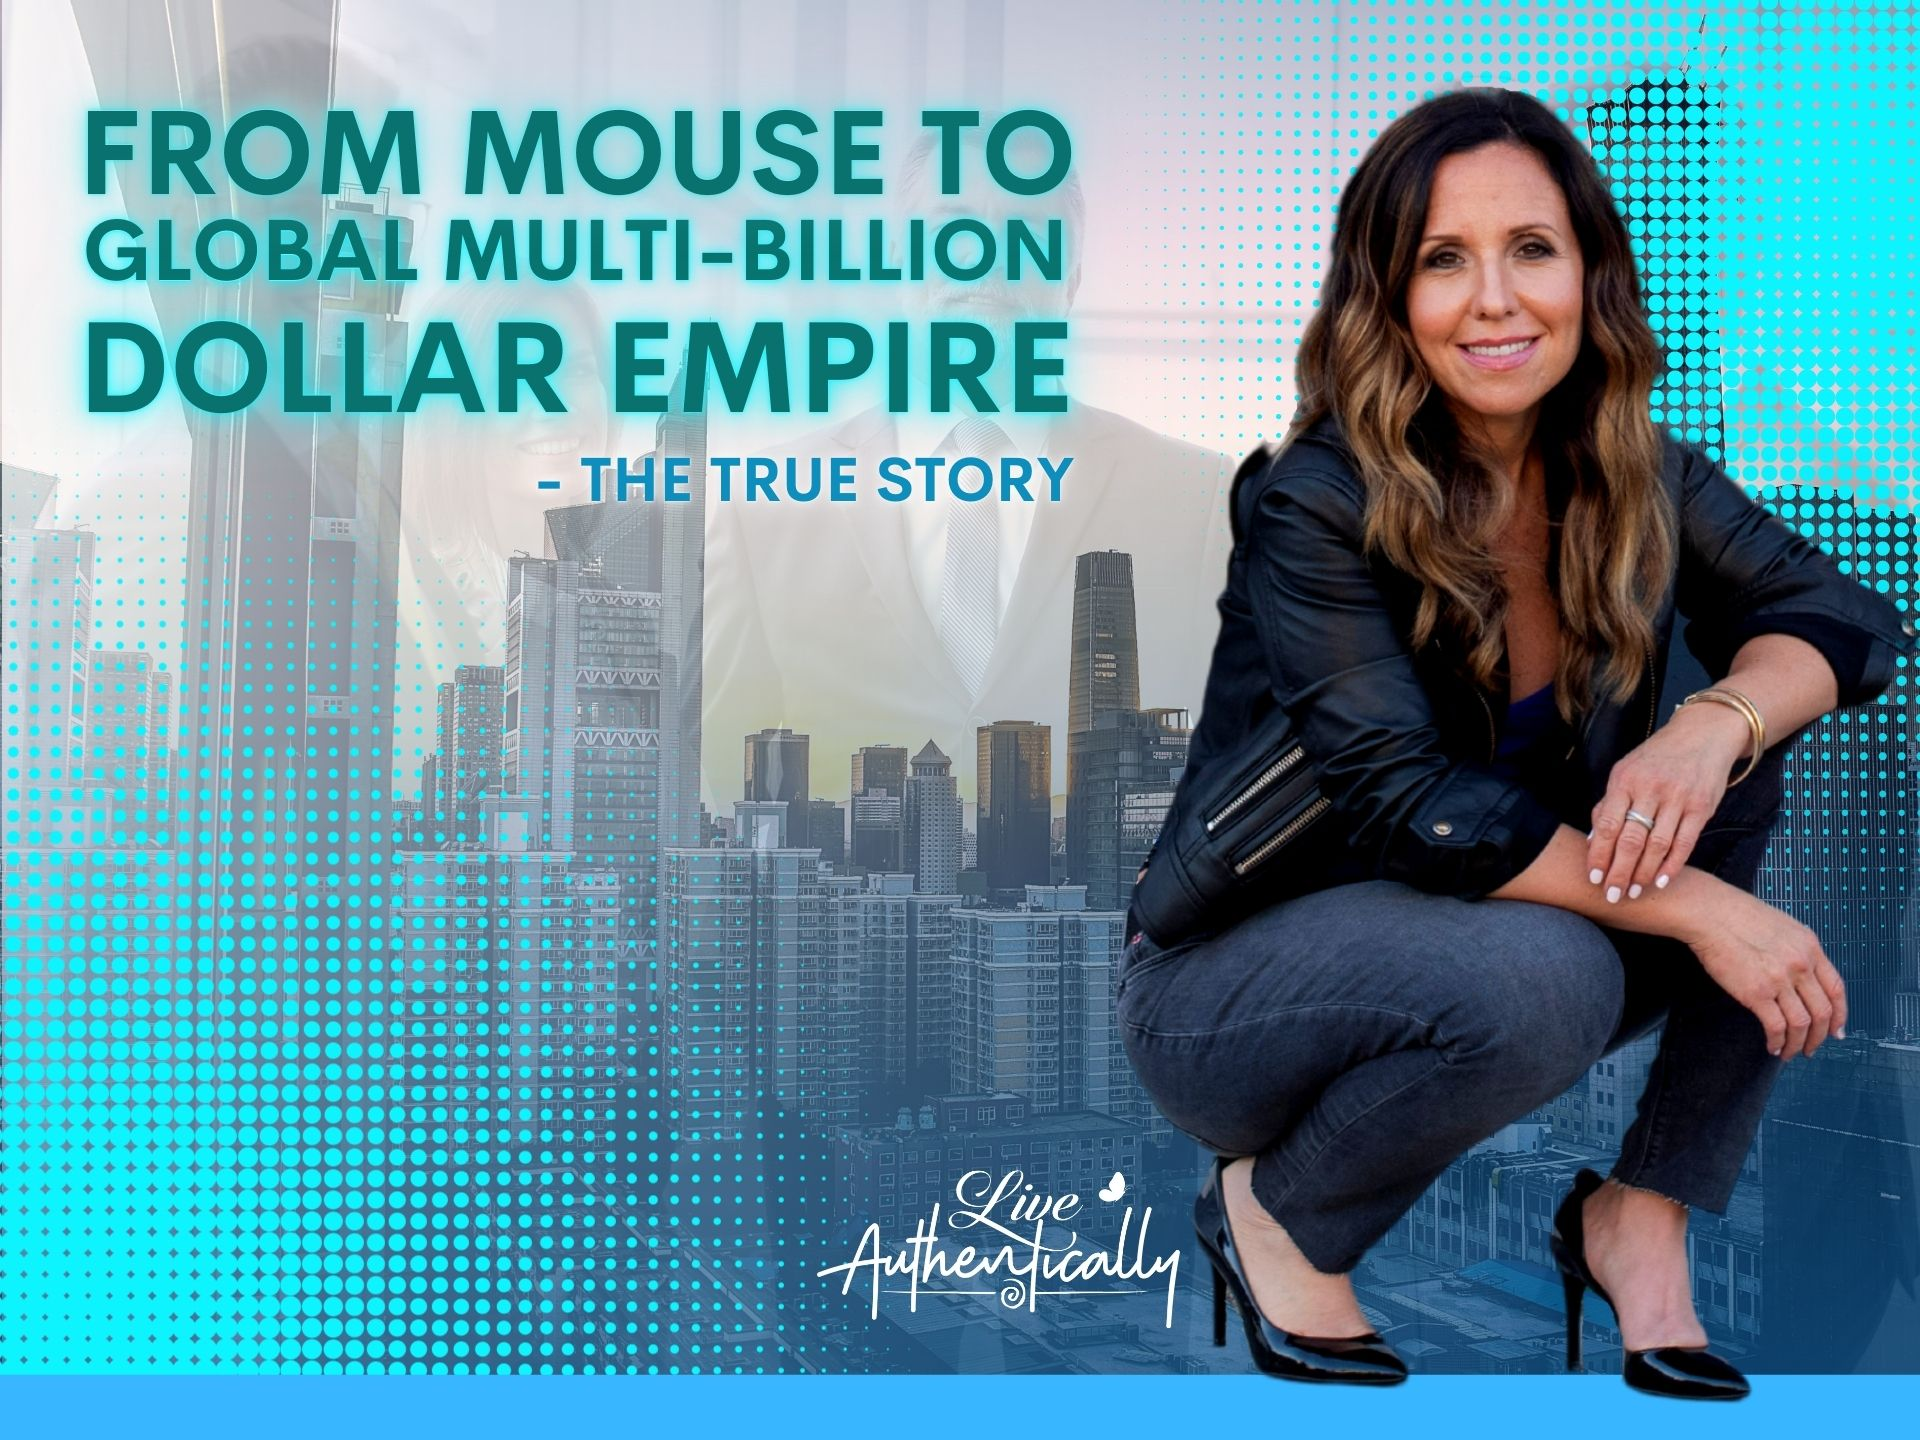 From Mouse to Global Multi-Billion Dollar Empire - The True Story